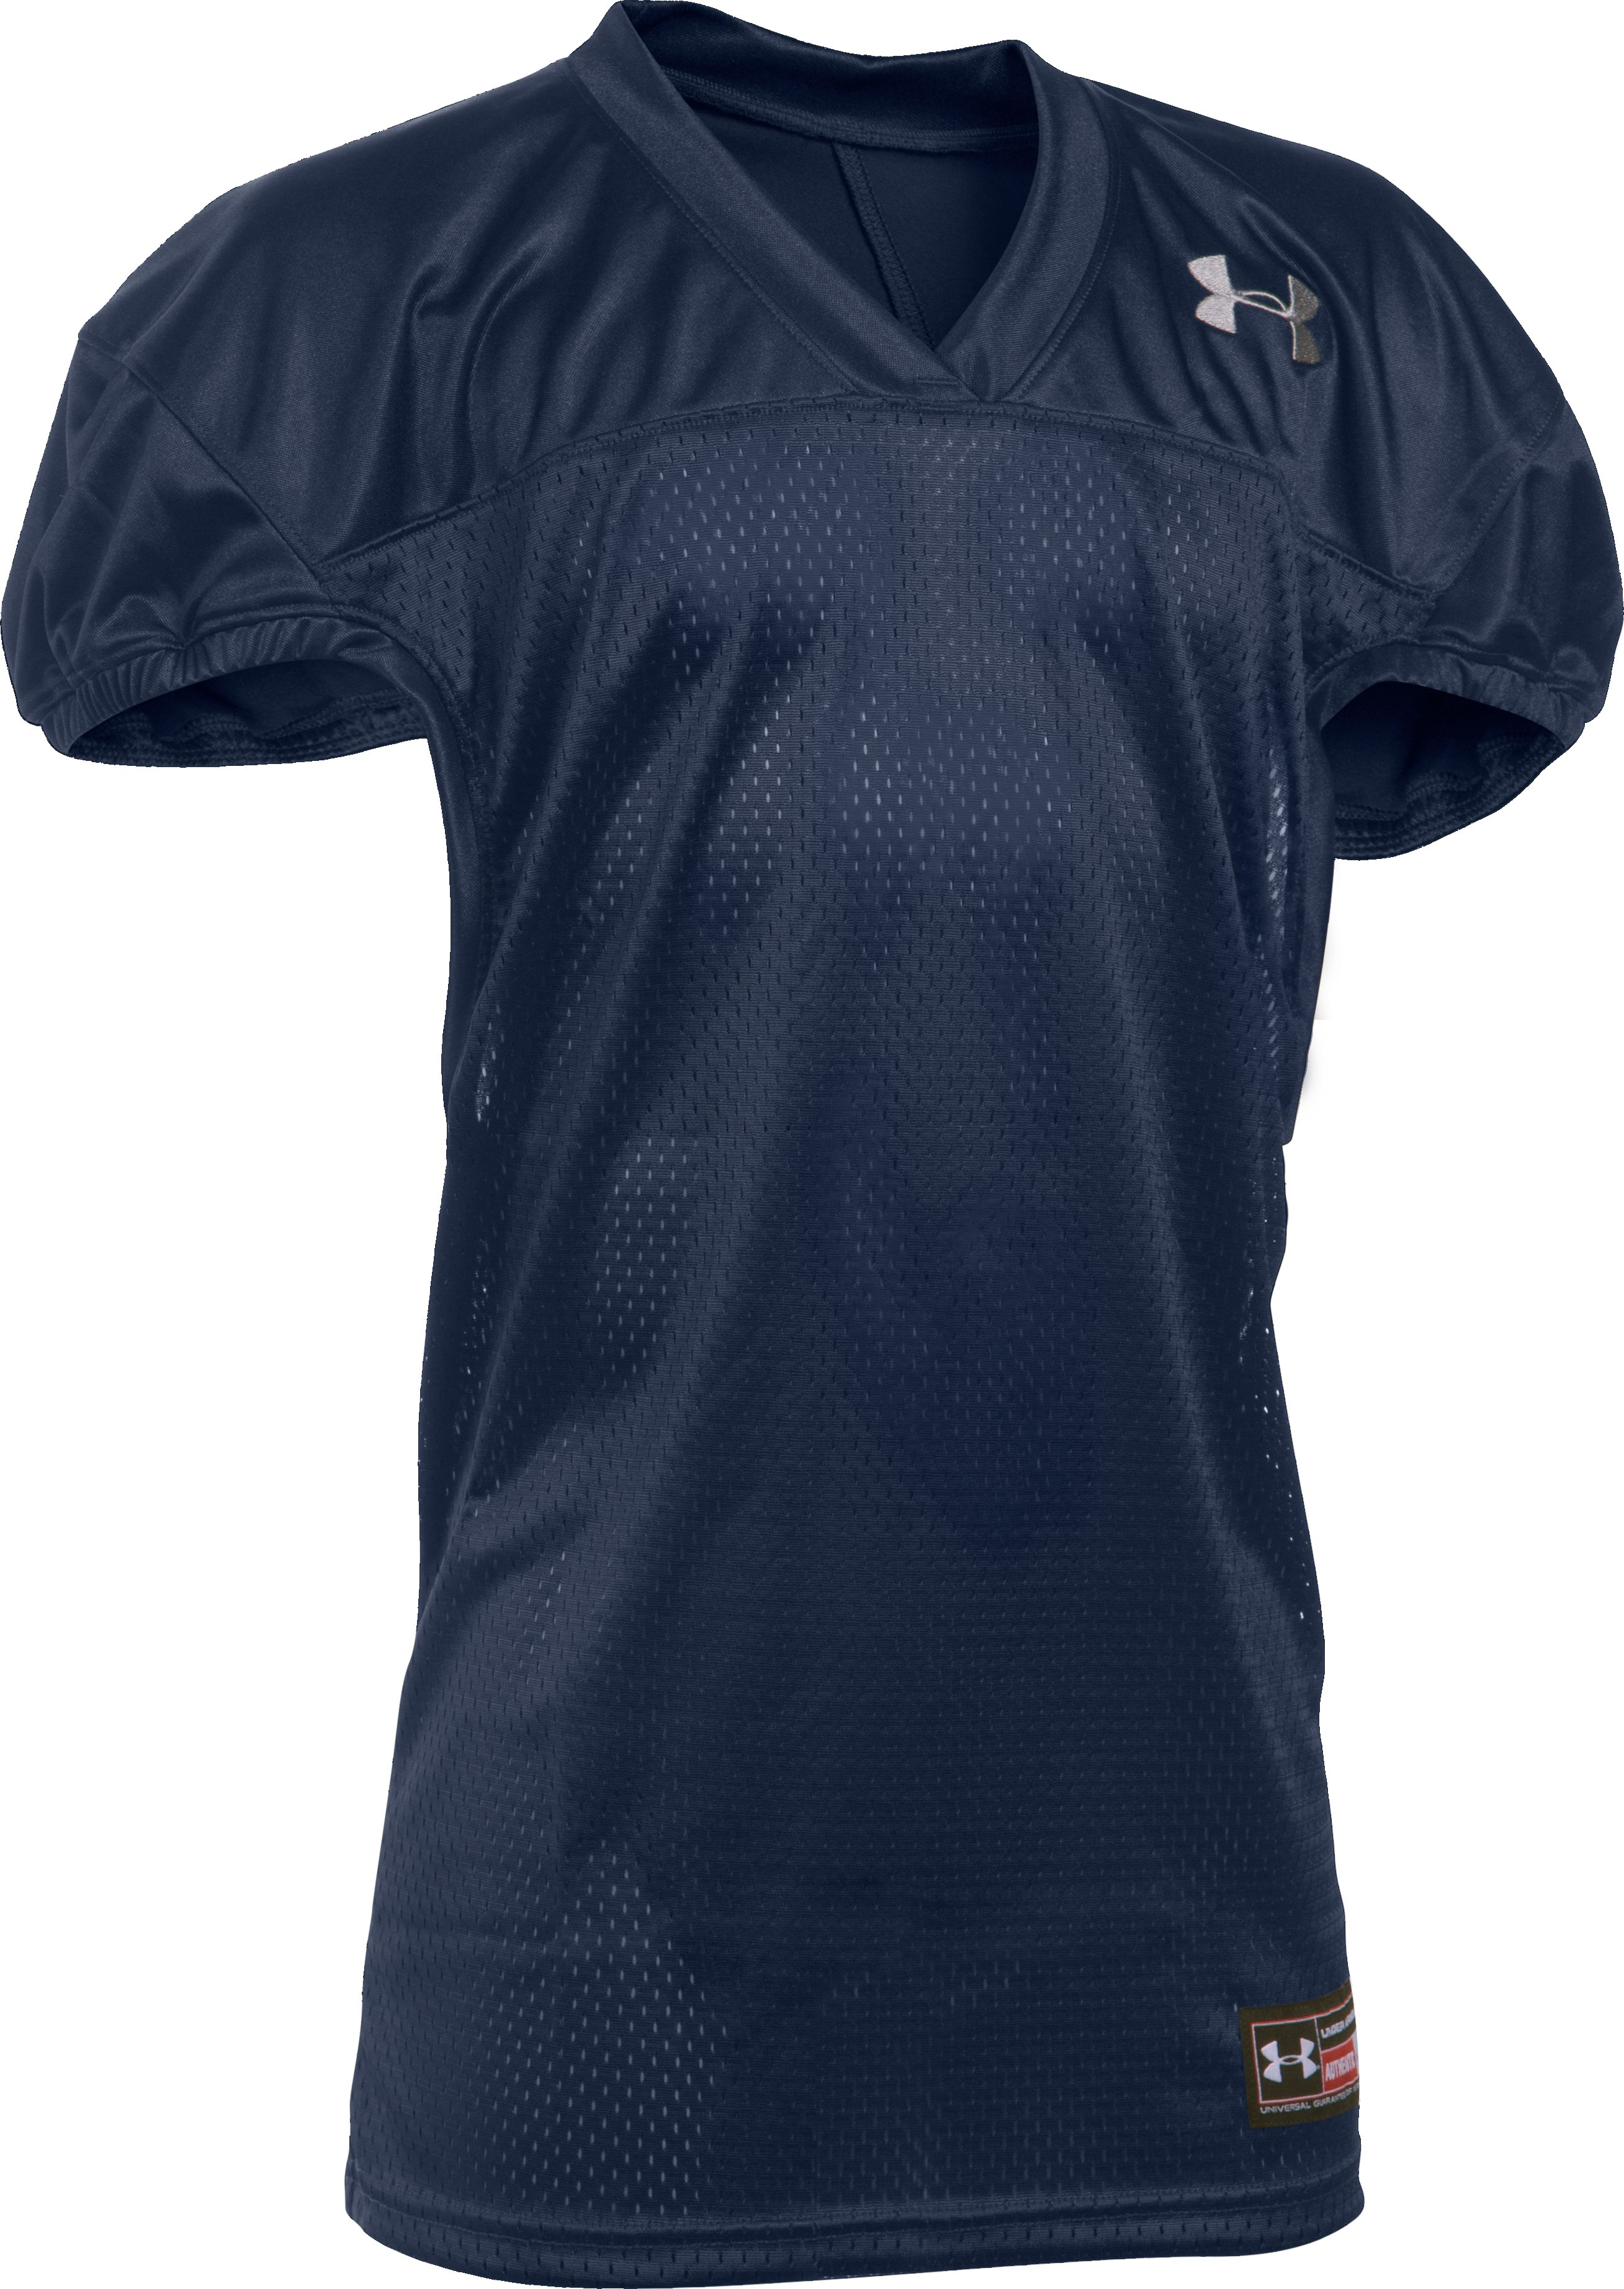 Boys' UA Football Jersey, Midnight Navy